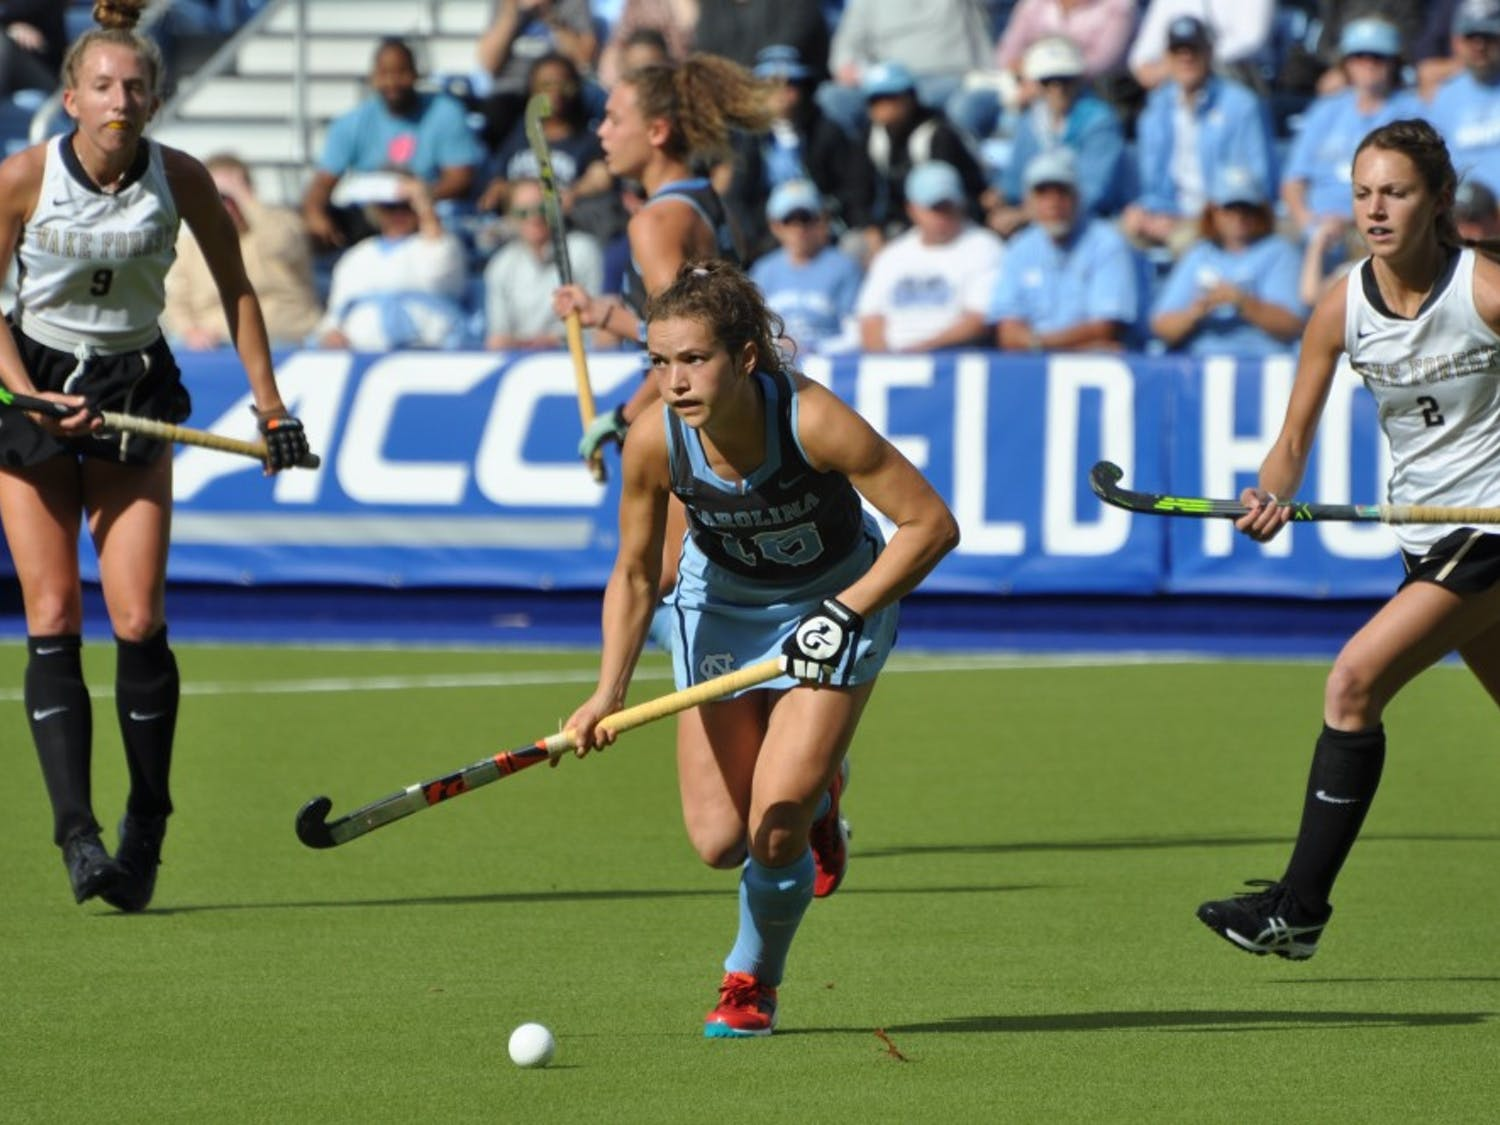 Midfielder Yentl Leemans (18) looks down the field during Sunday's ACC championship game against Wake Forest. UNC won 7-2.